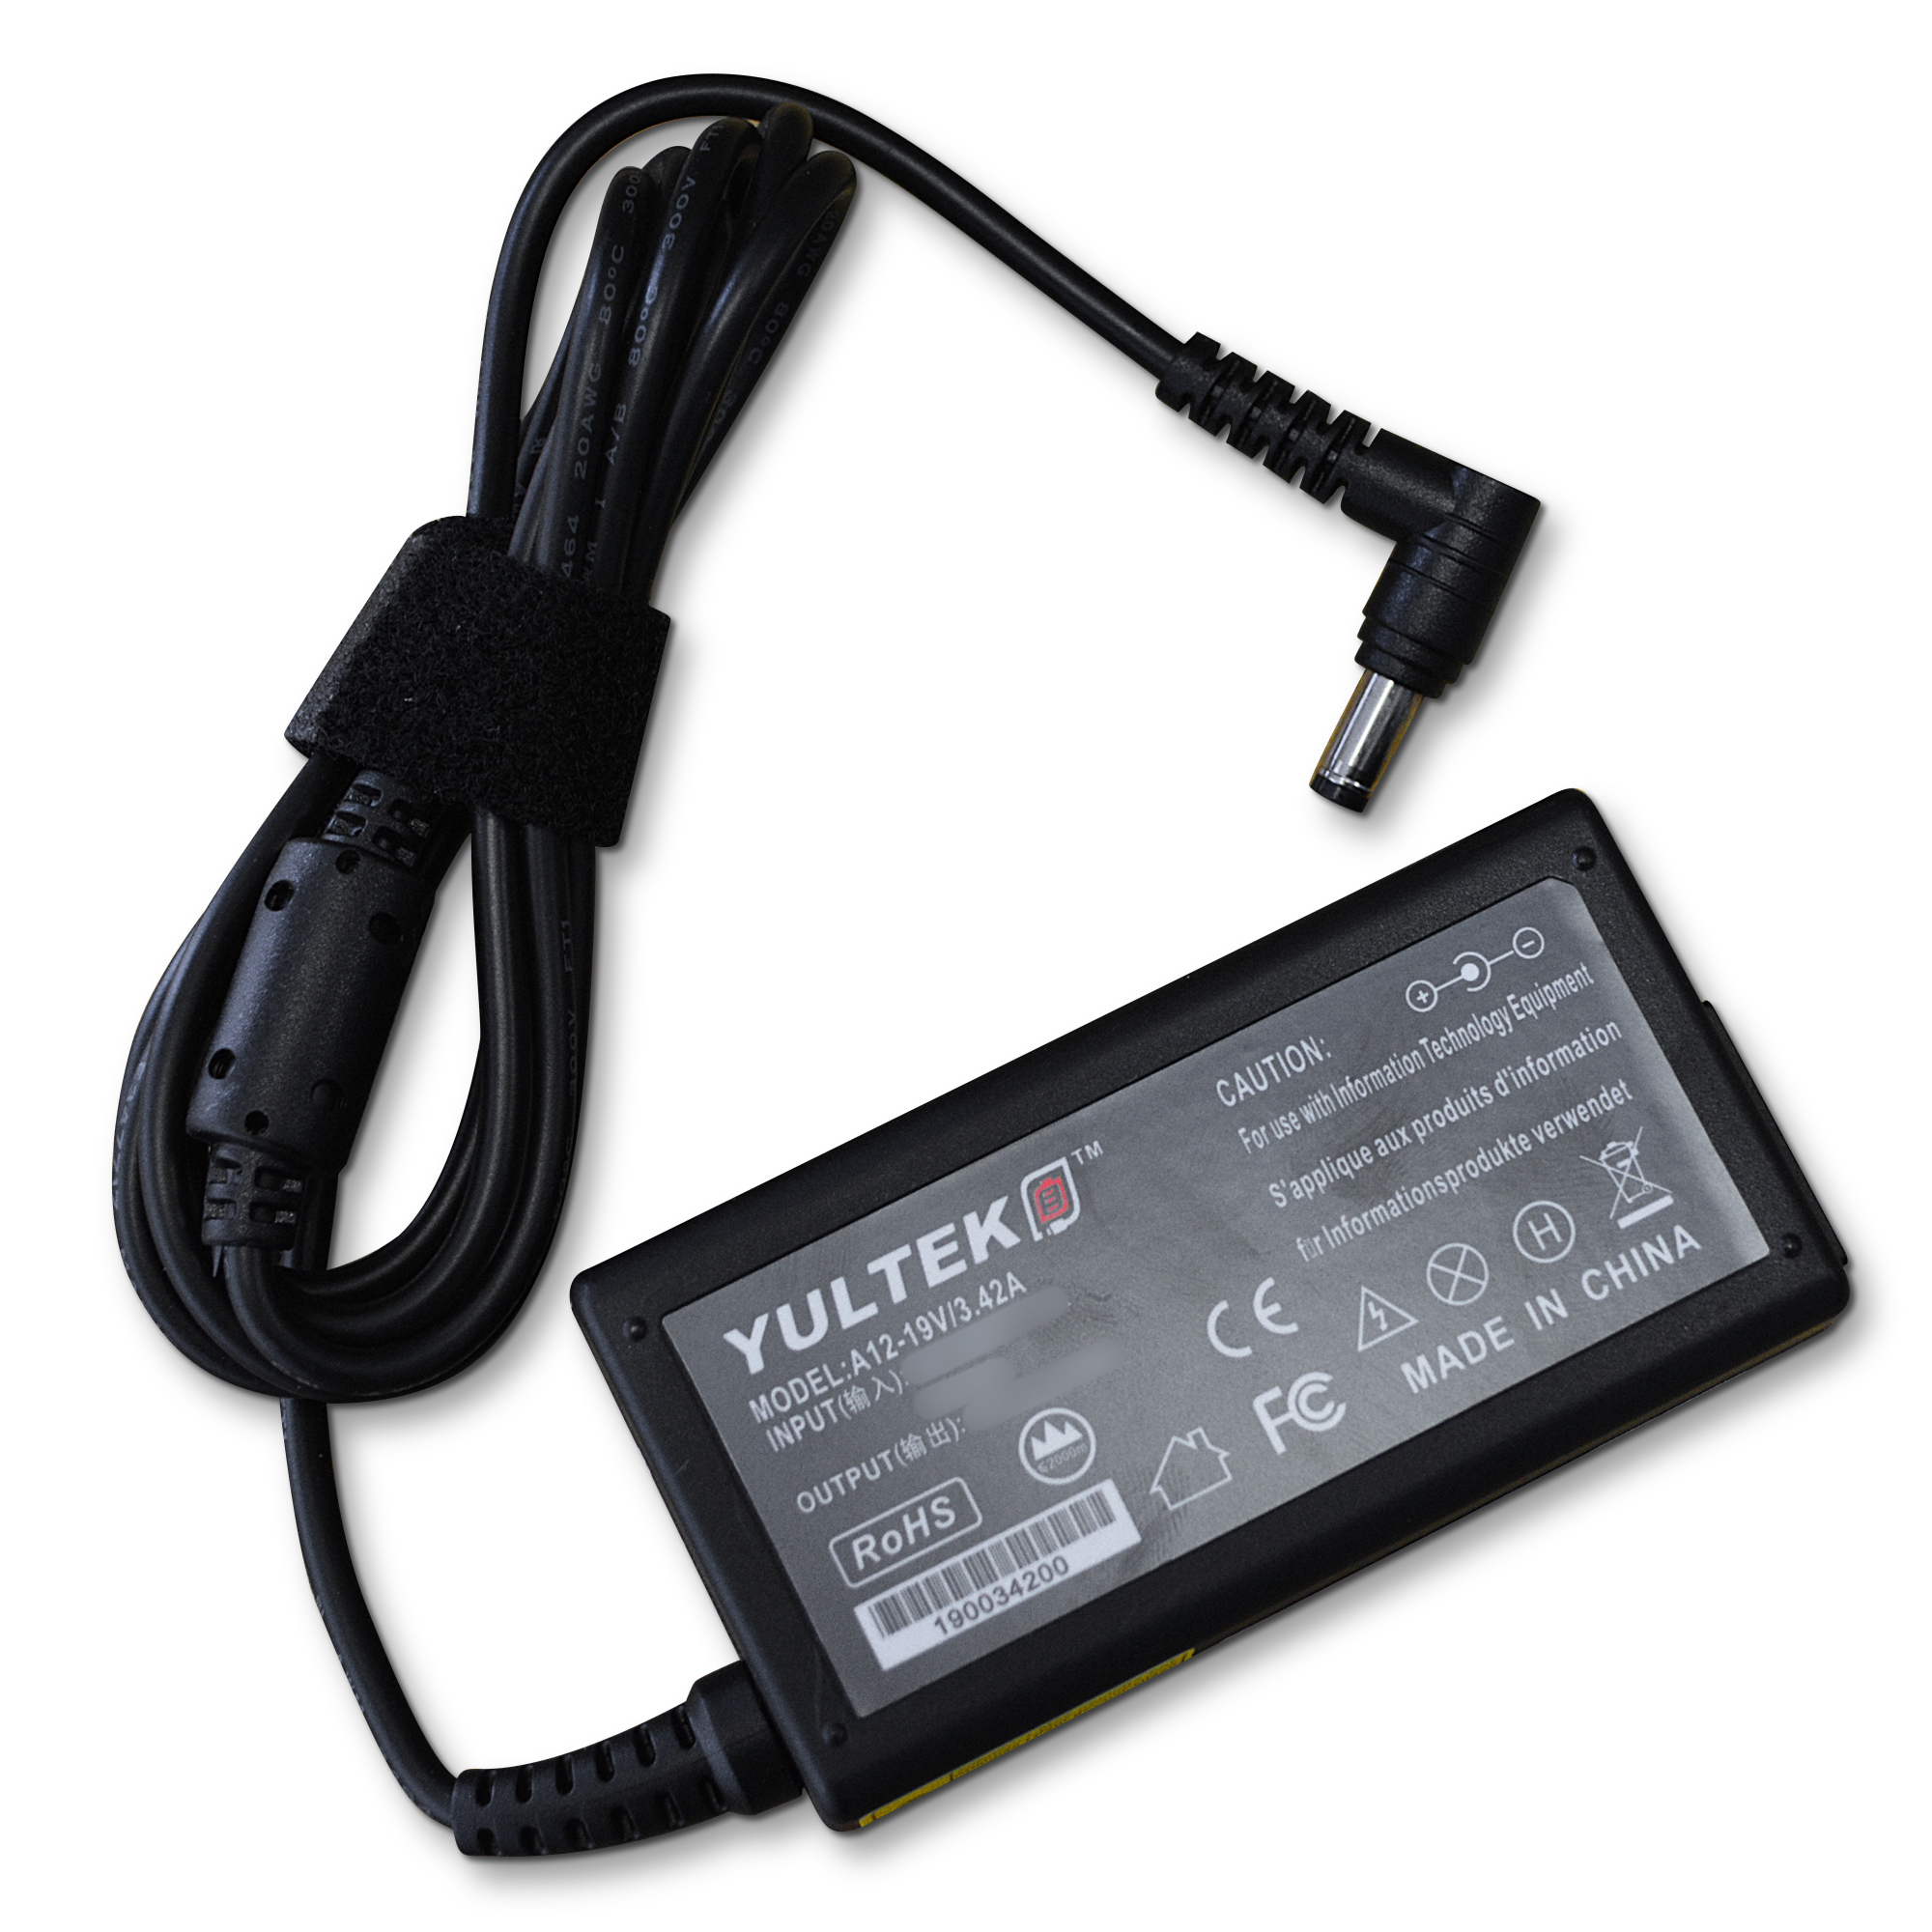 Fujitsu-Siemens Part Number WTS:25.10181.011 Laptop Charger